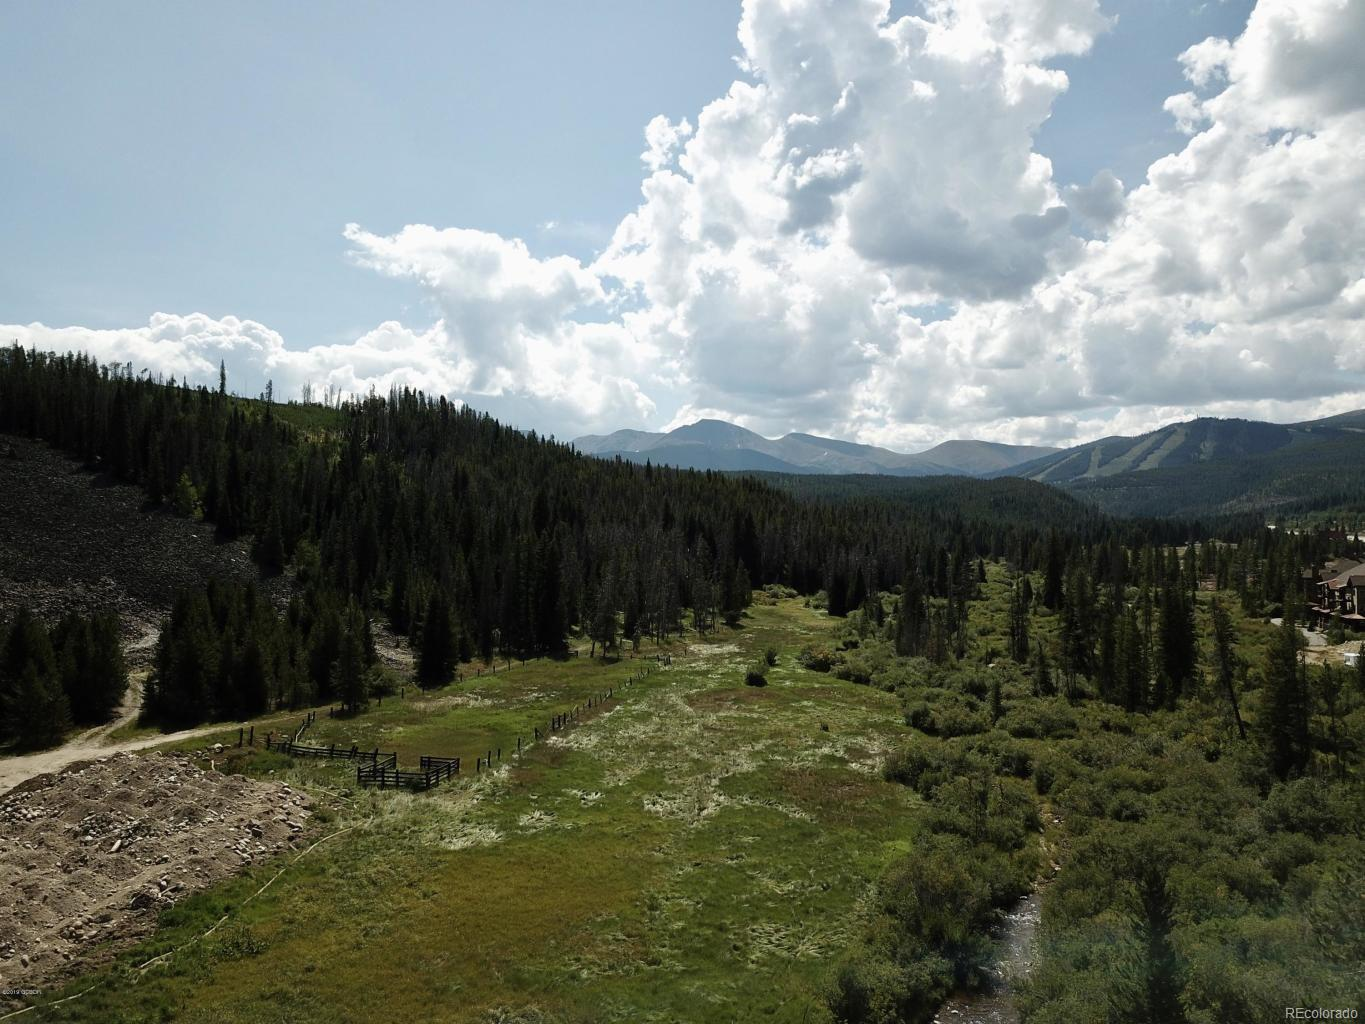 000 Ski Idlewild - Tract G Road, Winter Park, CO 80482 - Winter Park, CO real estate listing